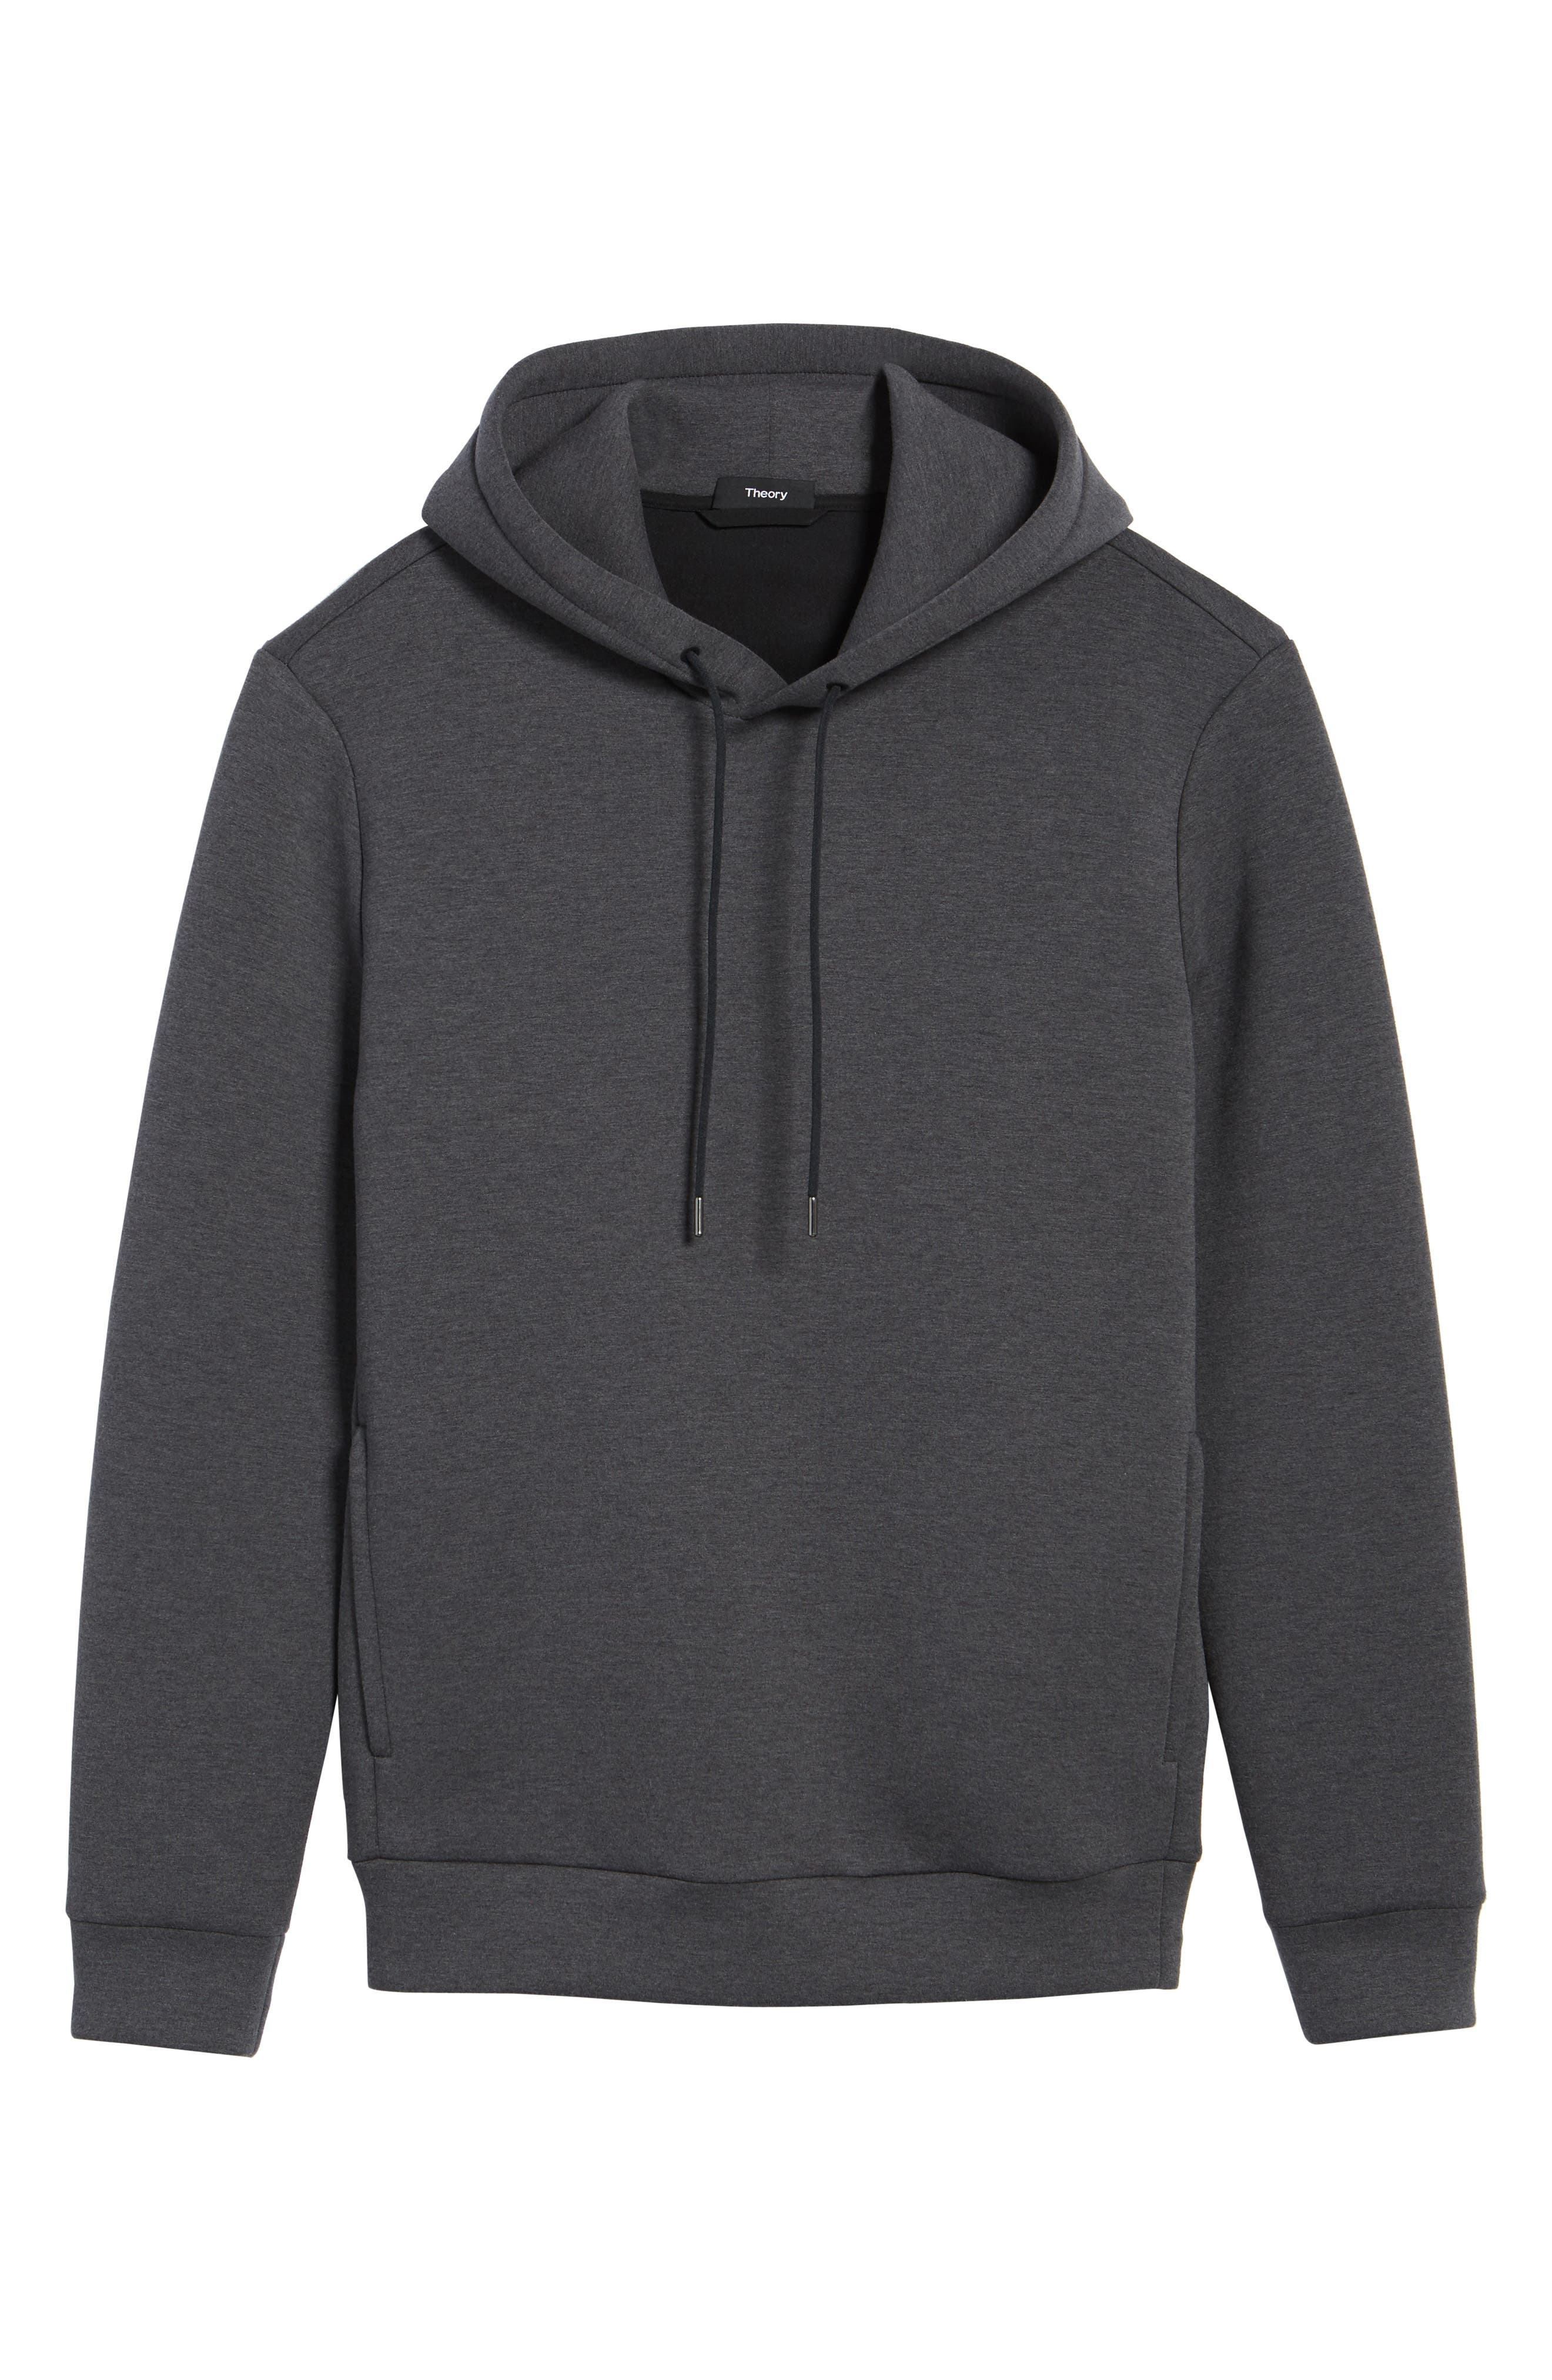 Scuba Pullover Hoodie,                             Alternate thumbnail 6, color,                             Charcoal Heather